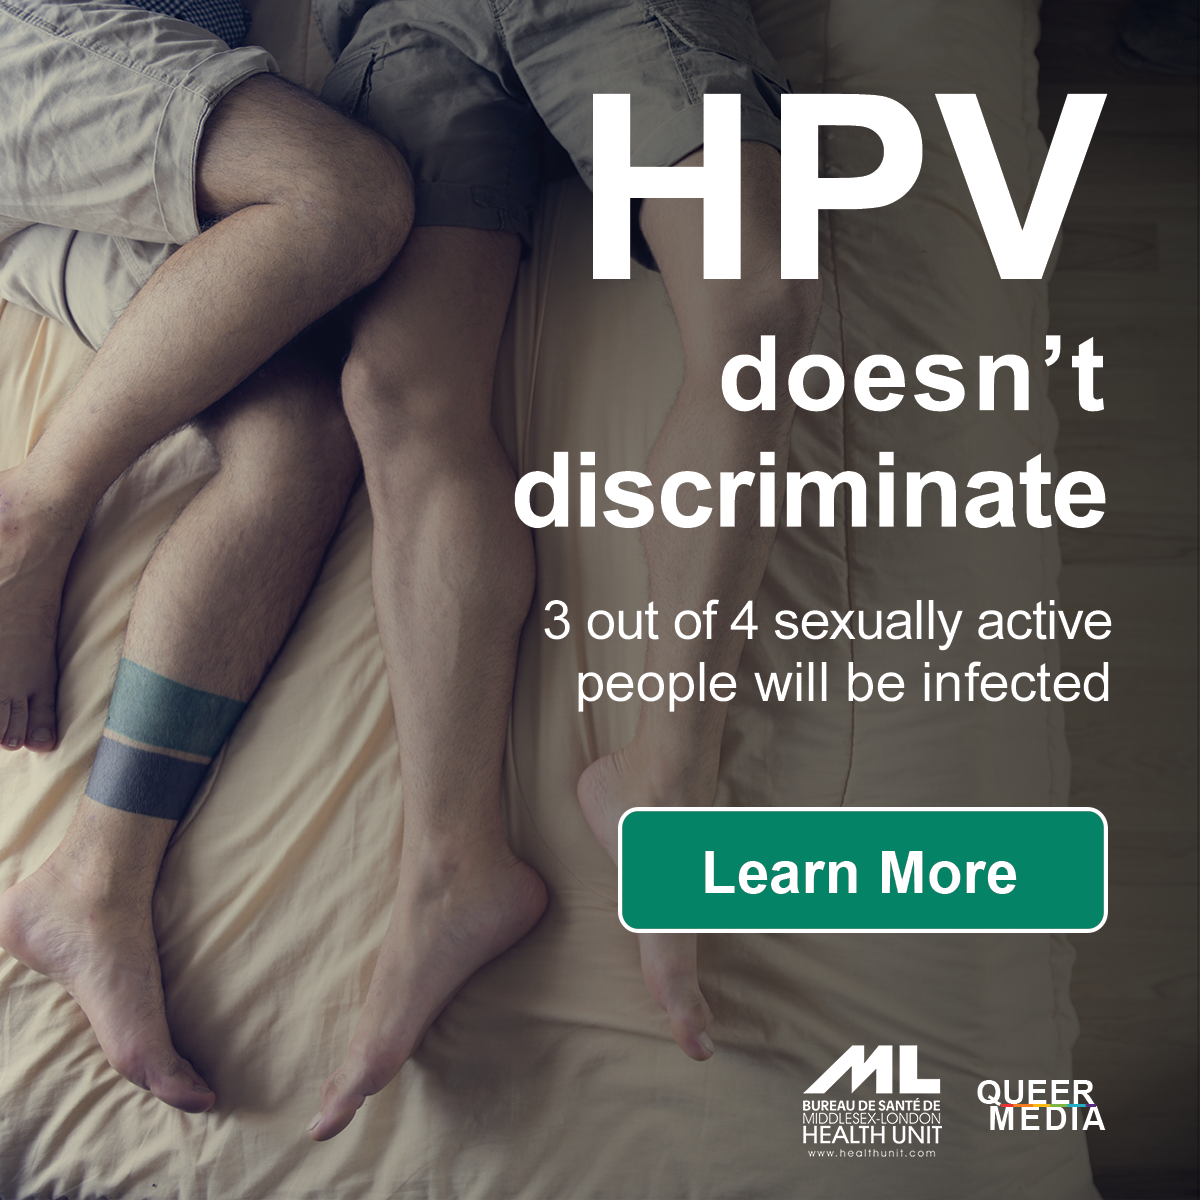 Accept. Hpv and lesbian